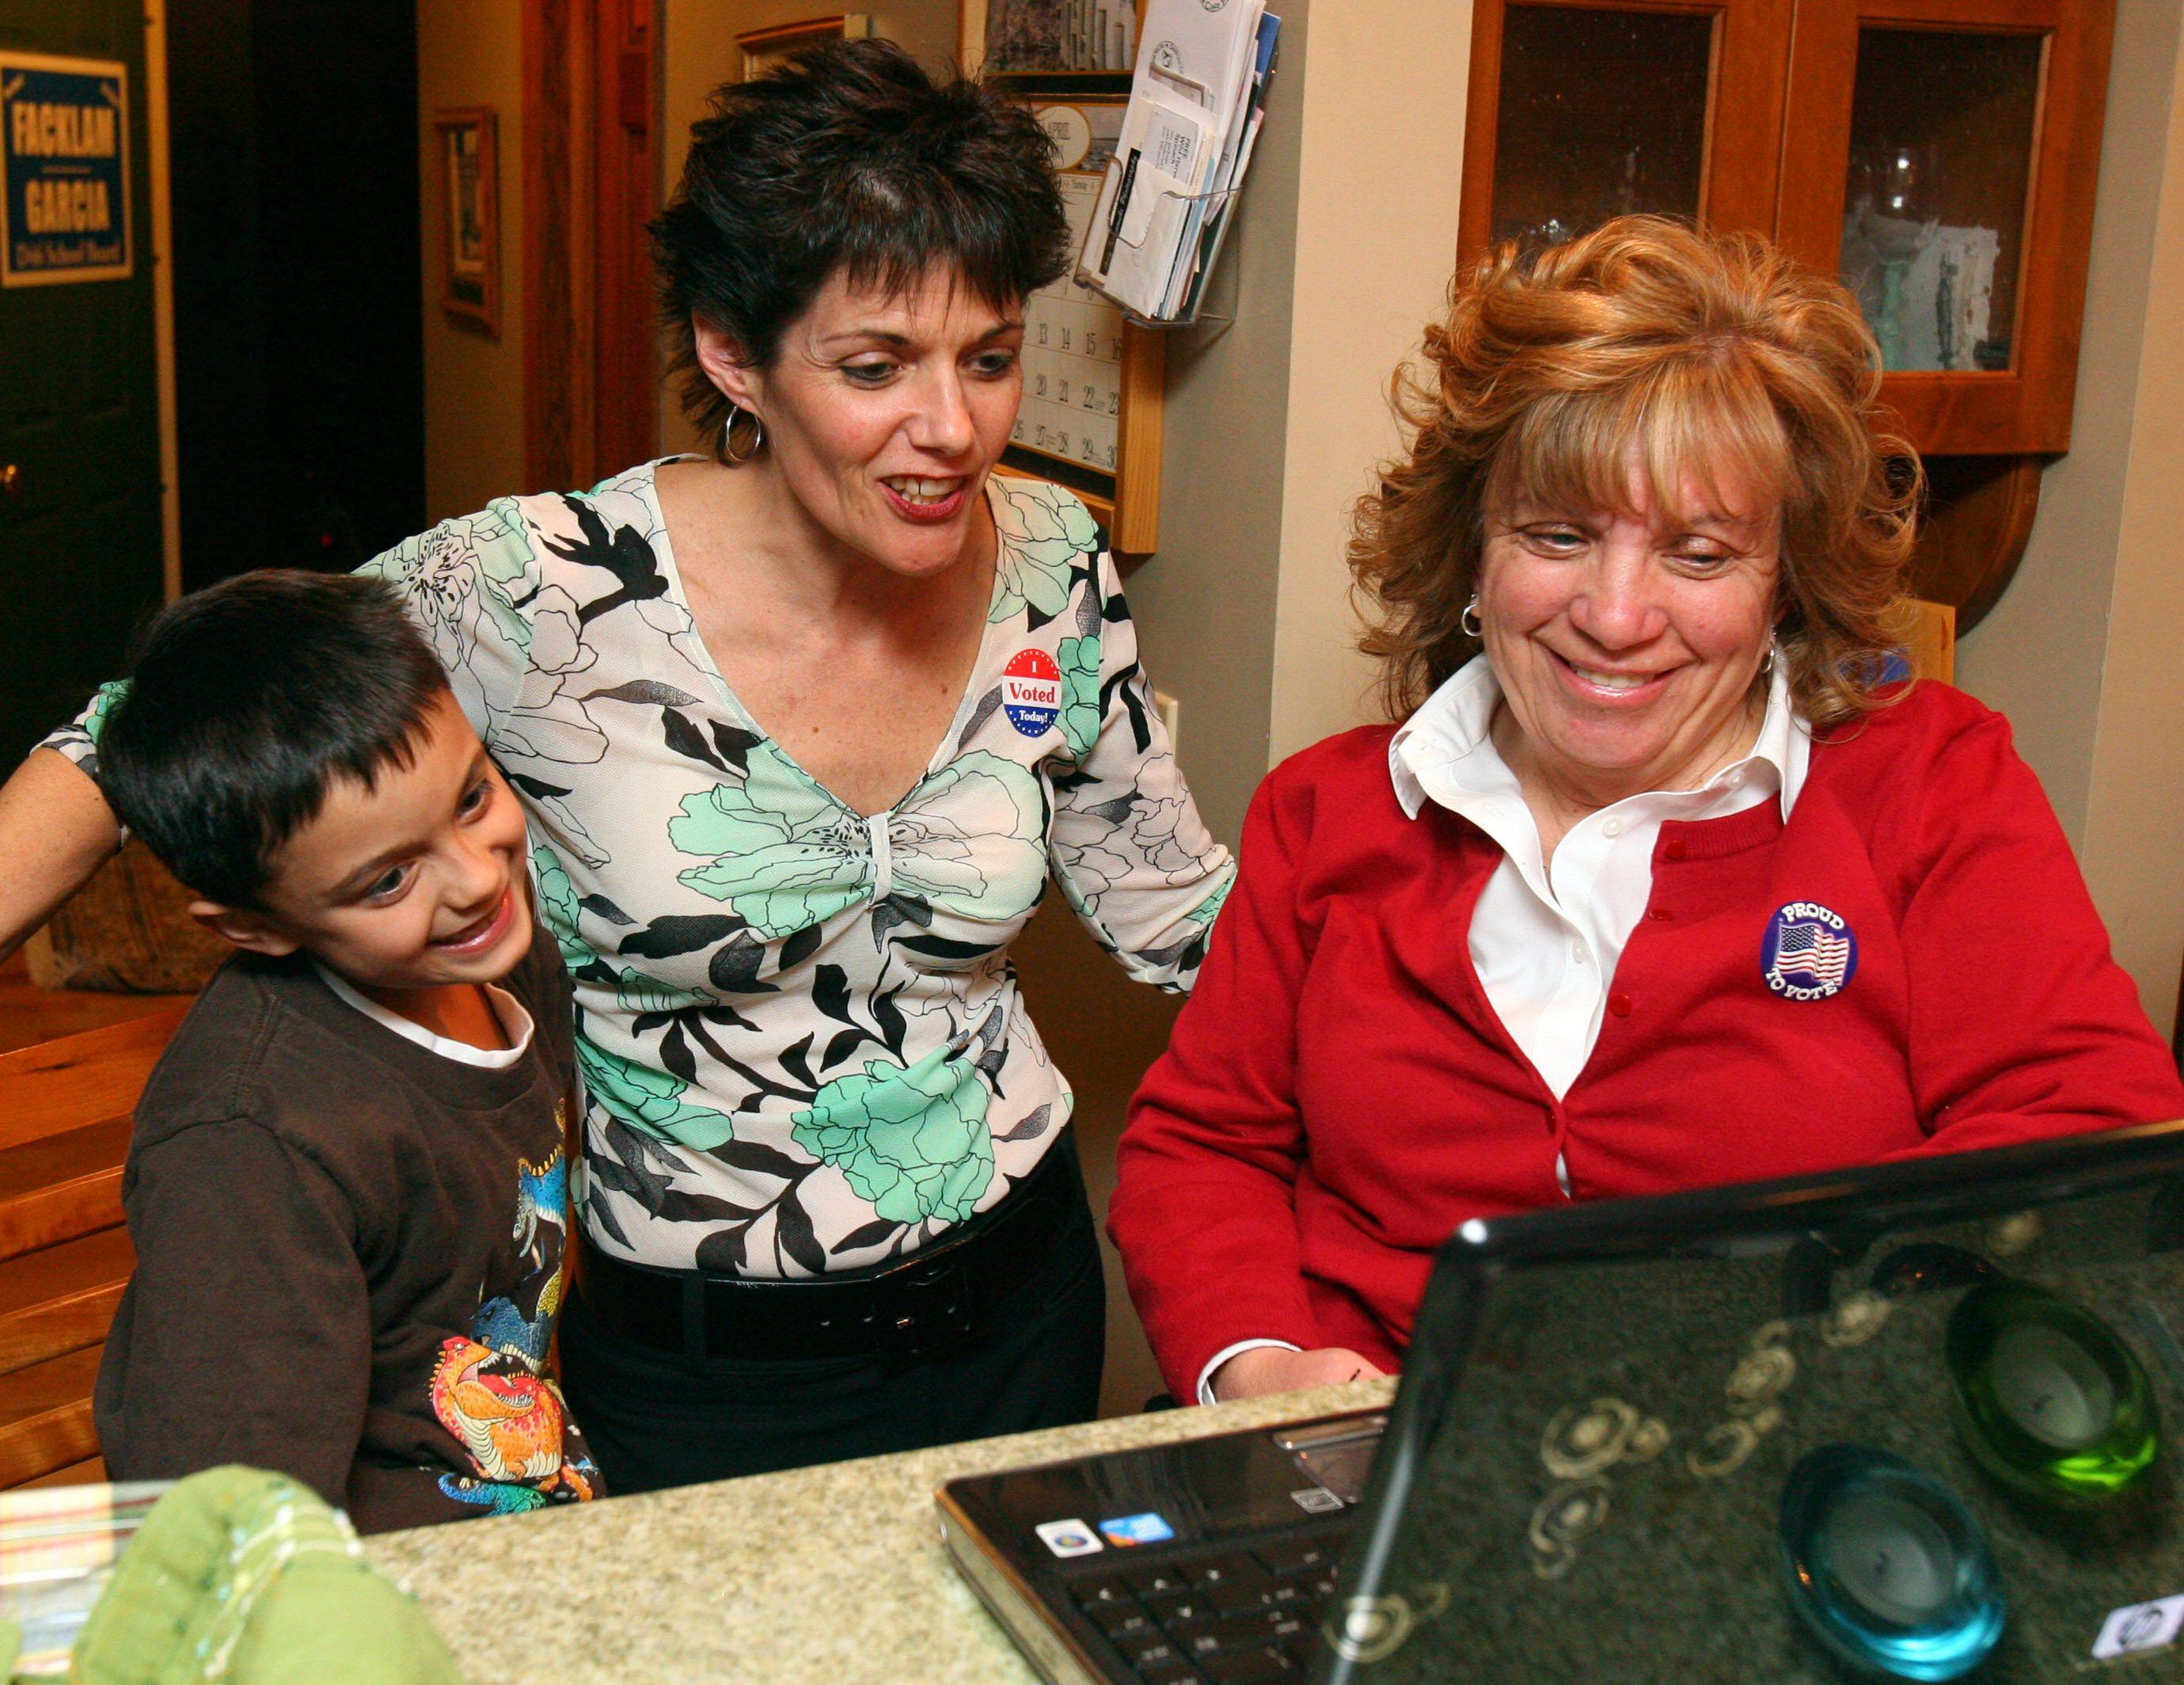 Grayslake District 46 school board incumbents Mary Garcia, left, and Susan Facklam look over election results with 8-year-old Mitchell Garcia at Facklam's Grayslake home Tuesday.